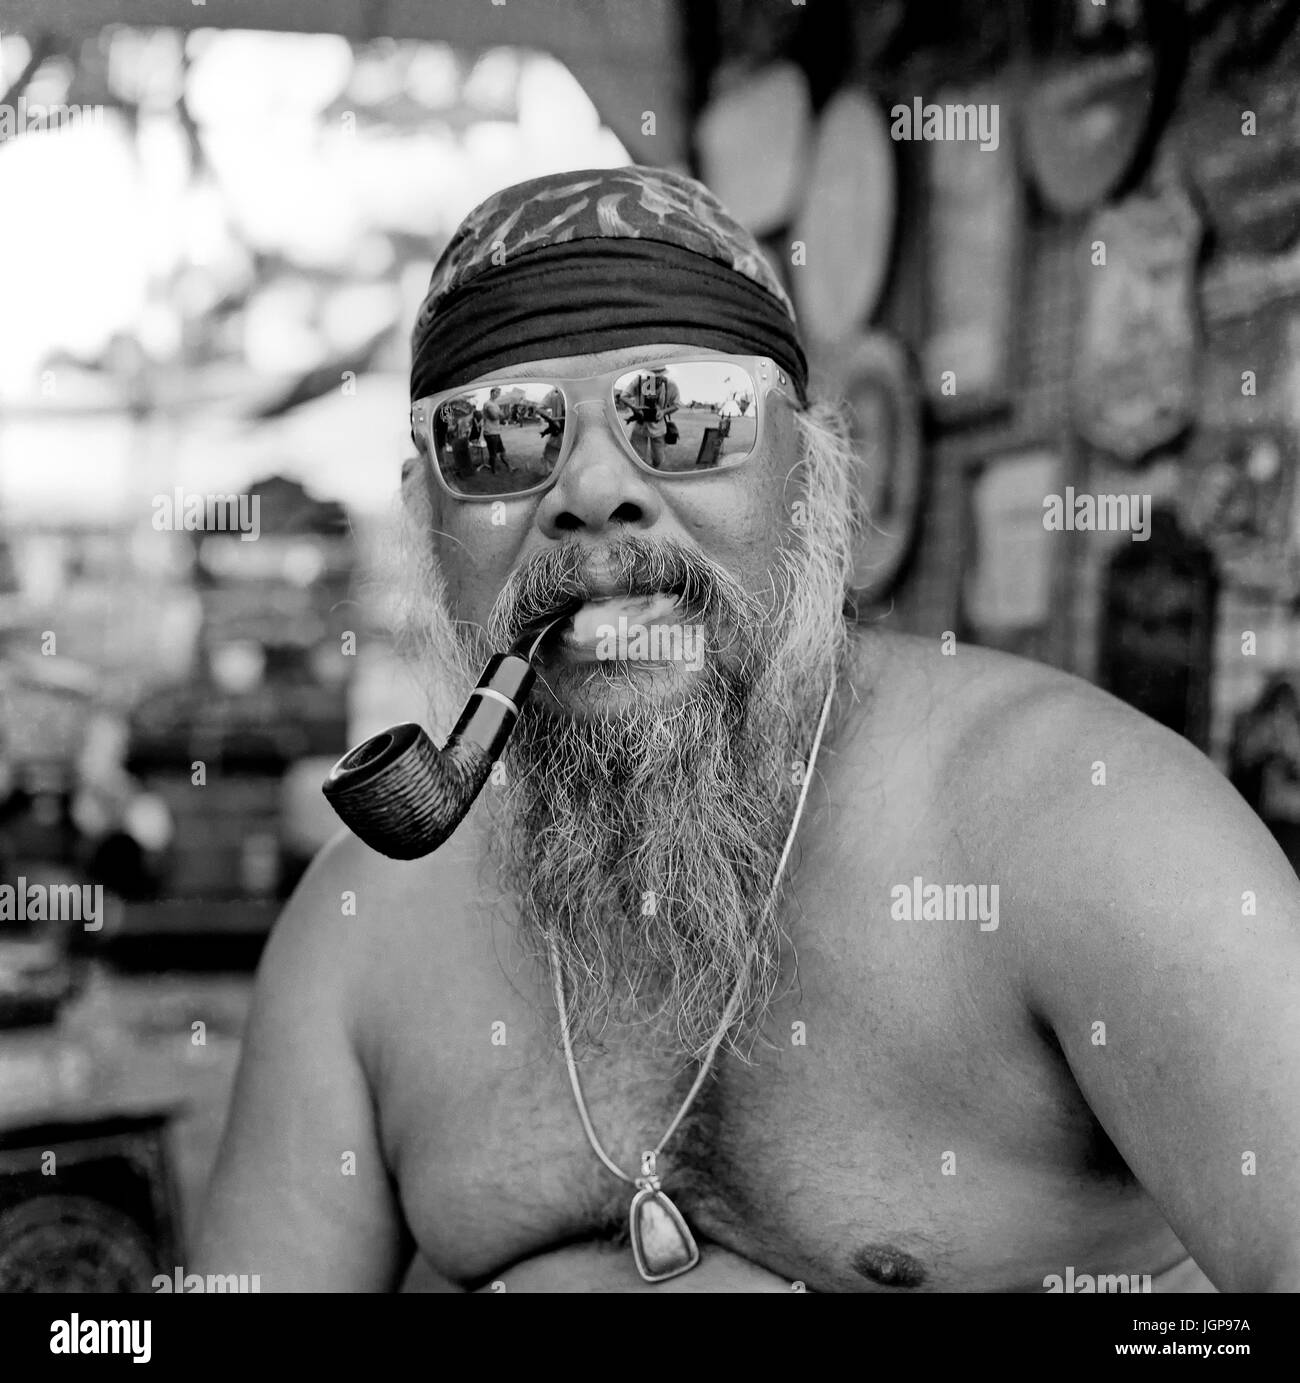 Black and white photography portrait of a pipe smoking shirtless Asian man. Thailand Southeast Asia - Stock Image